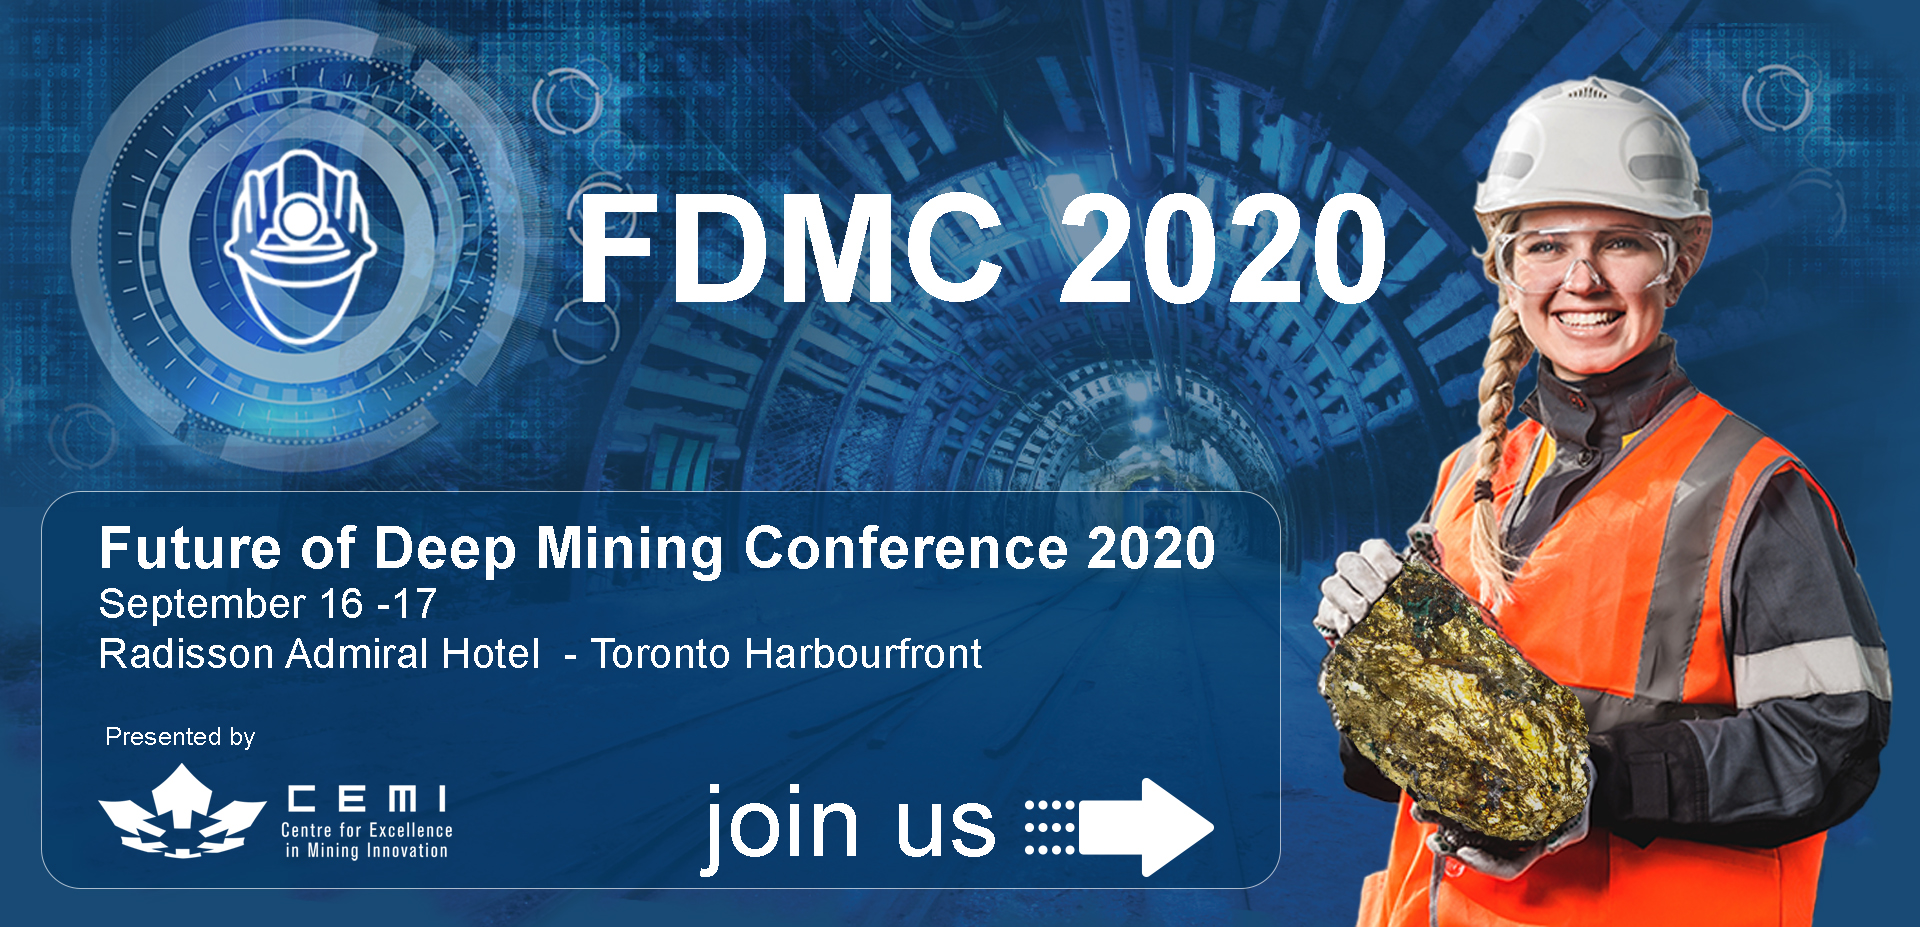 Future of Deep Mining Conference 2020